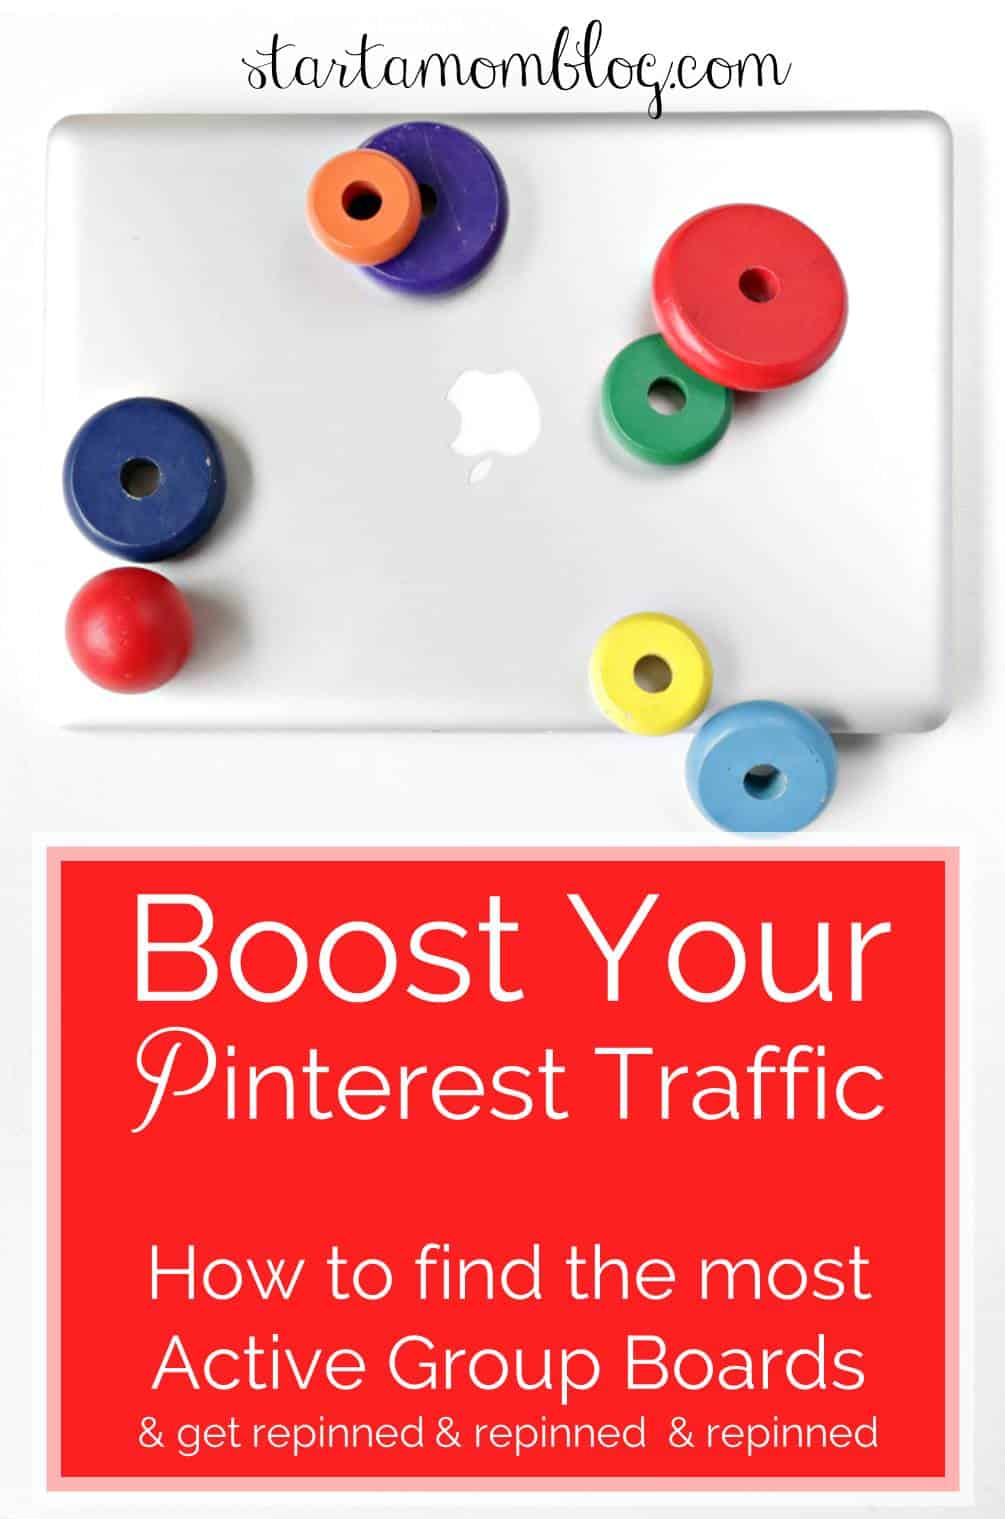 Boost Your Pinterest Traffic - How to find the most active group boards - www.startamomblog.com